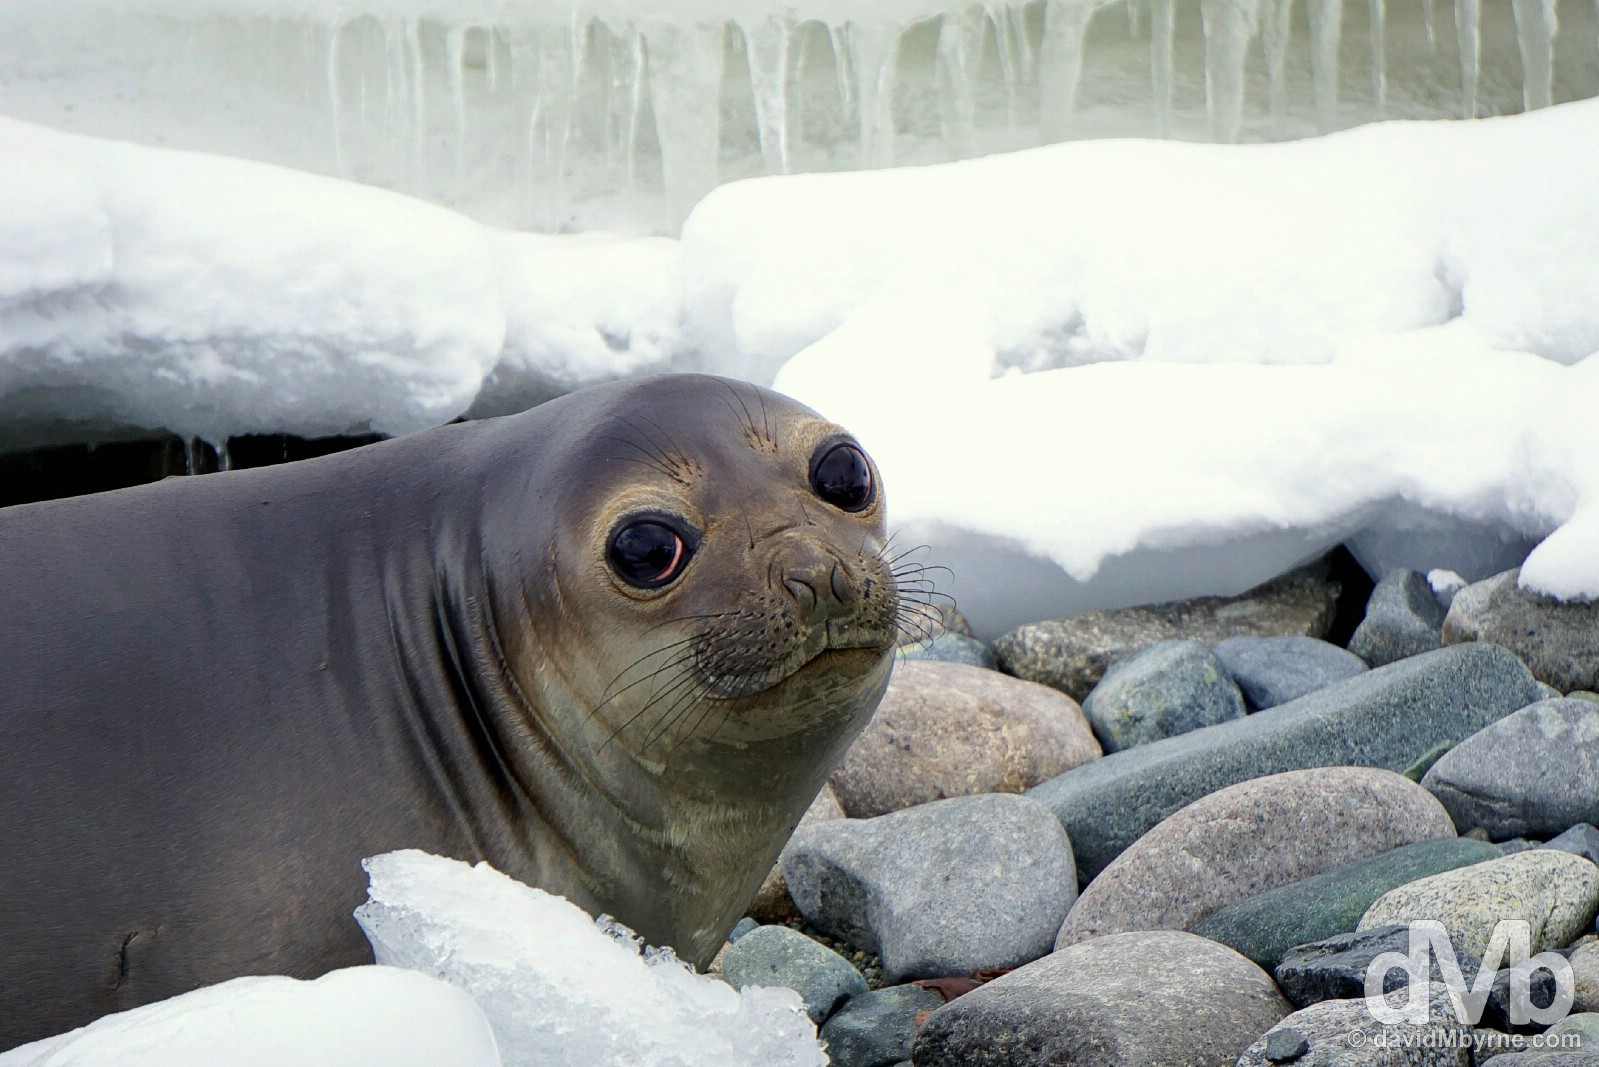 A baby Elephant Seal on Cuverville Island, Antarctic Peninsula. December 1, 2015.